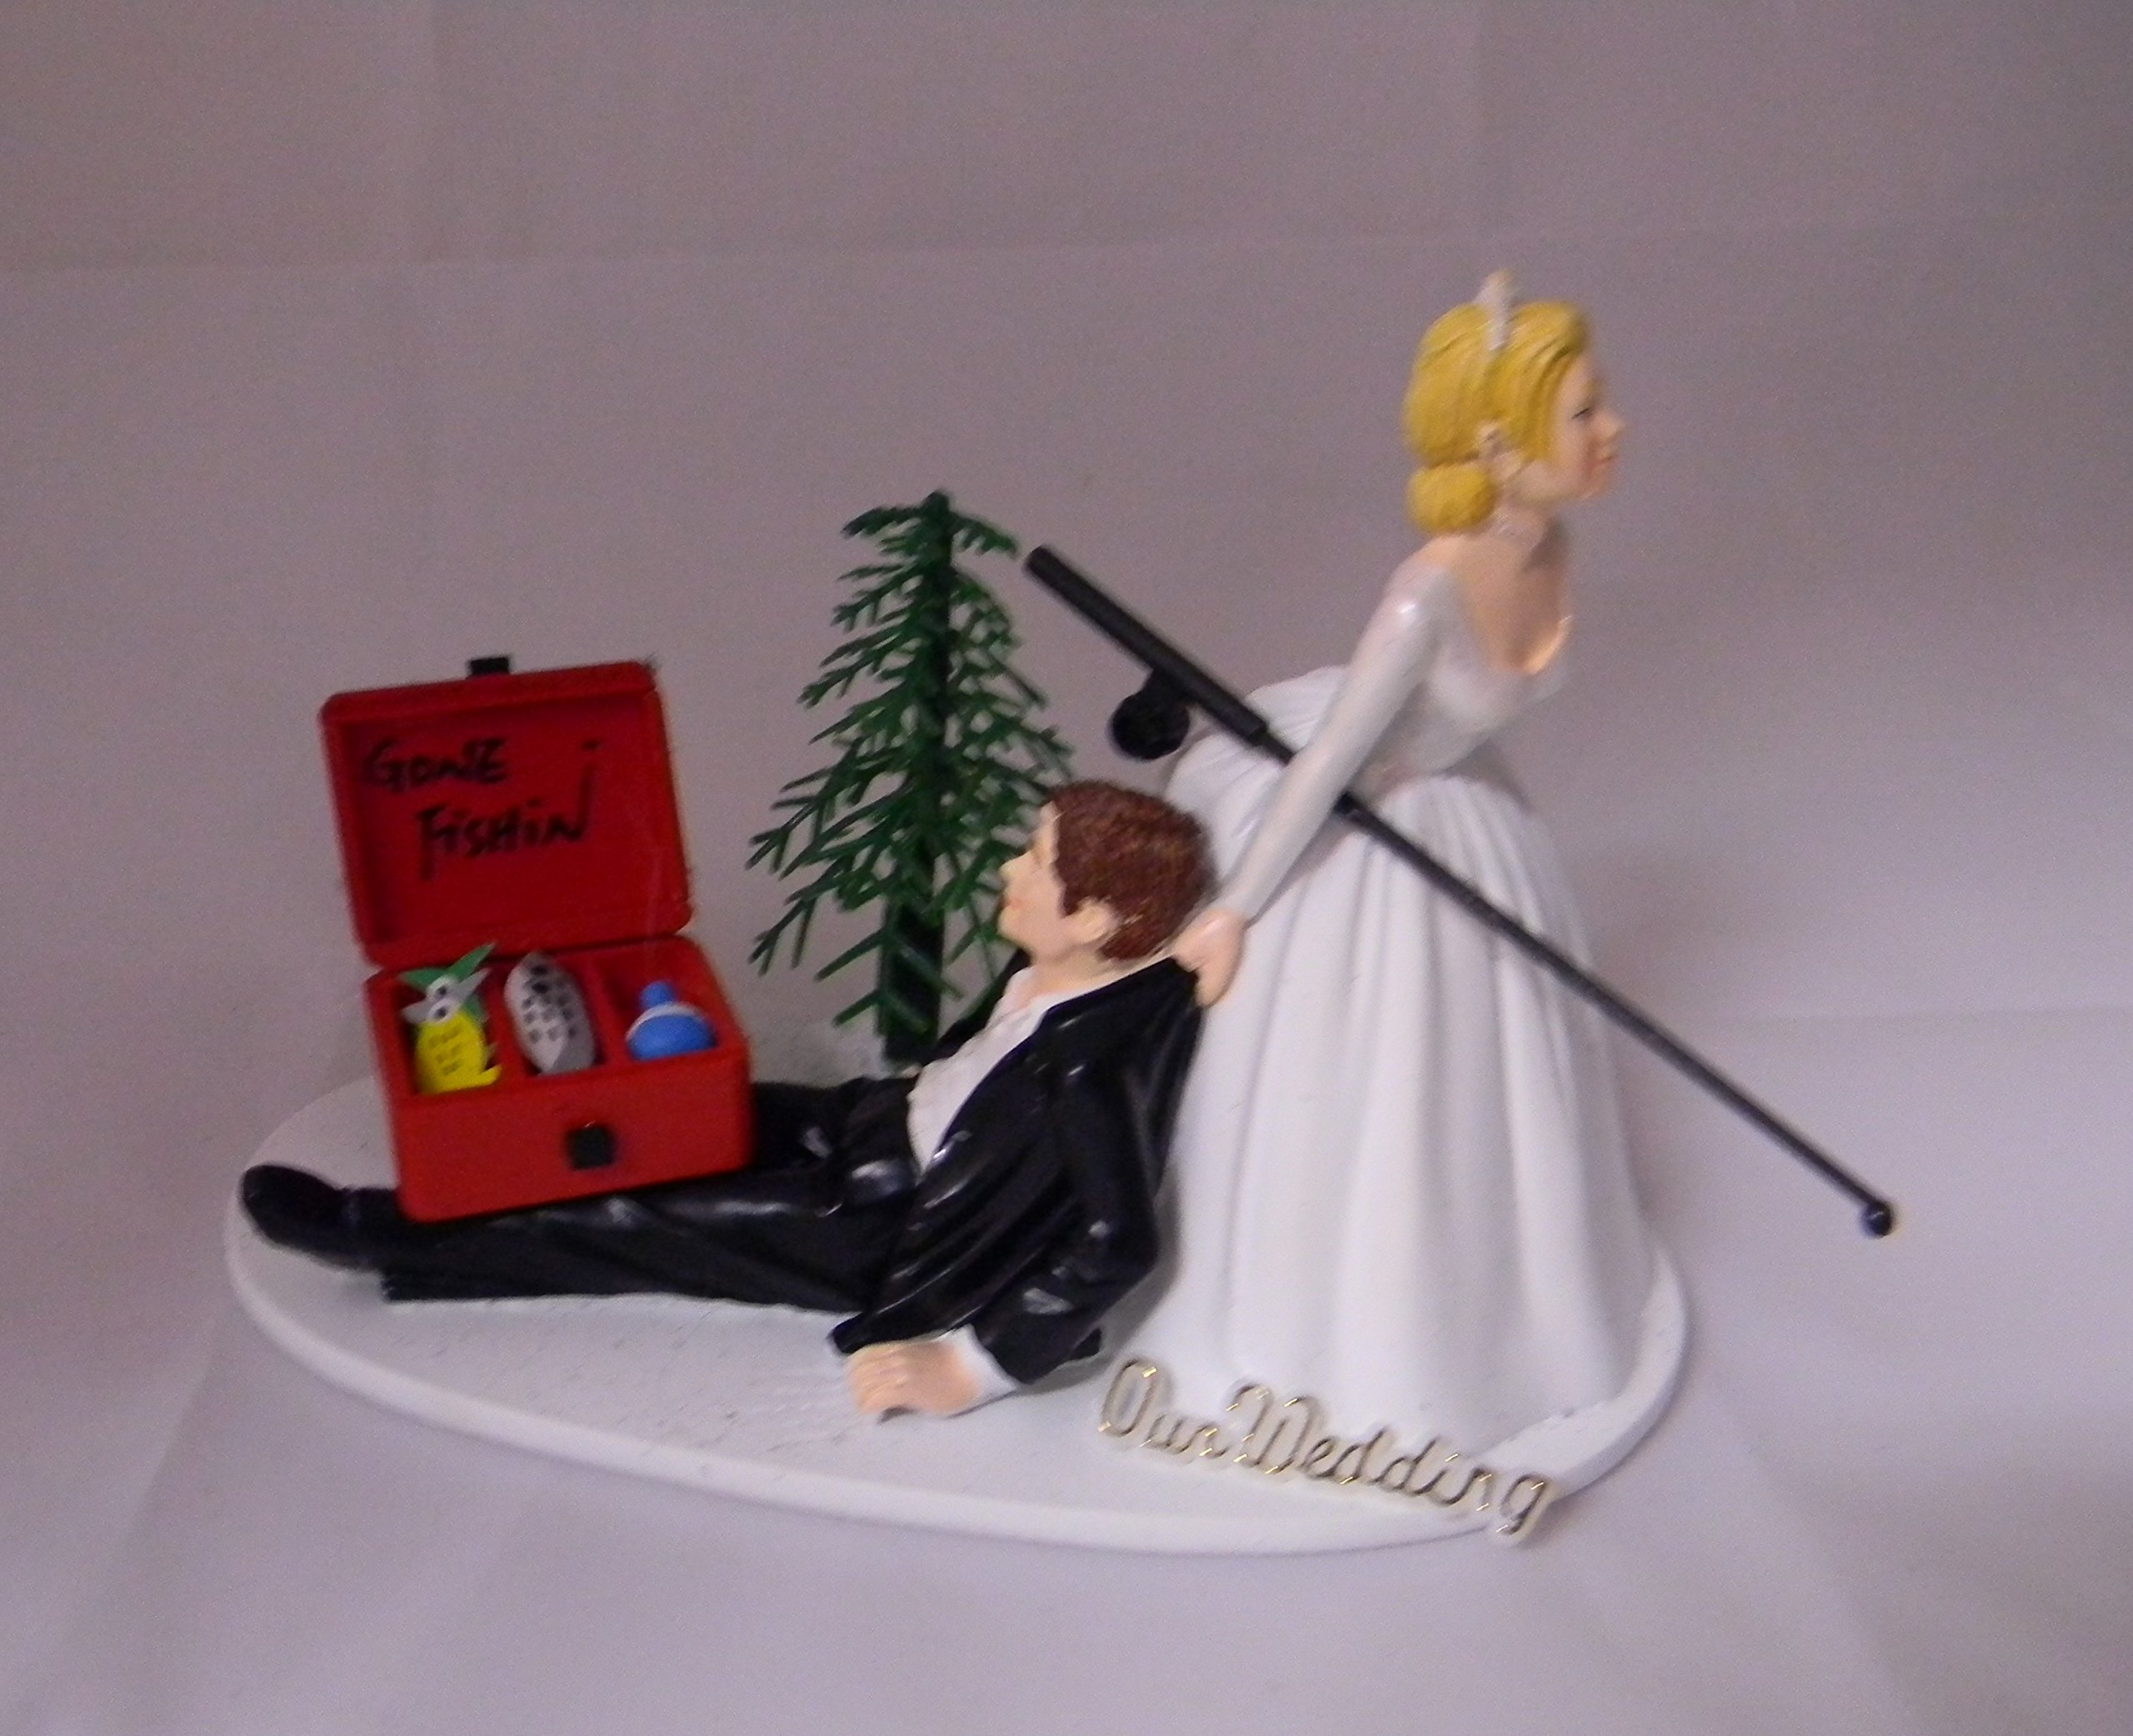 Wedding Reception Ceremony Party Fishing sign Pole Tackle Cake Topper by Designs by Susan